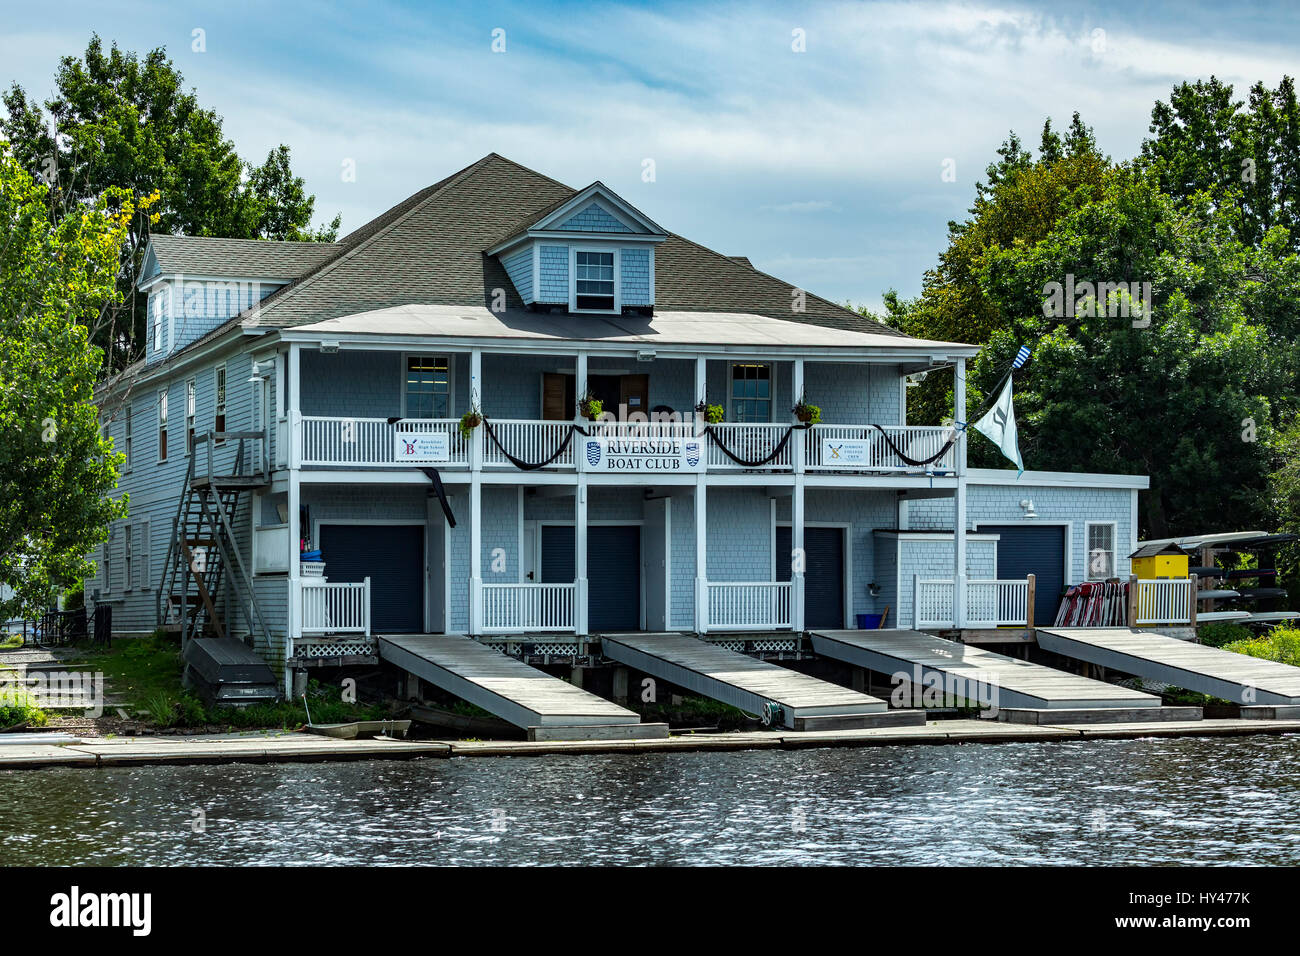 Riverside Boat Club boat house on Charles River, Cambridge (Boston Area), Massachusetts USA - Stock Image